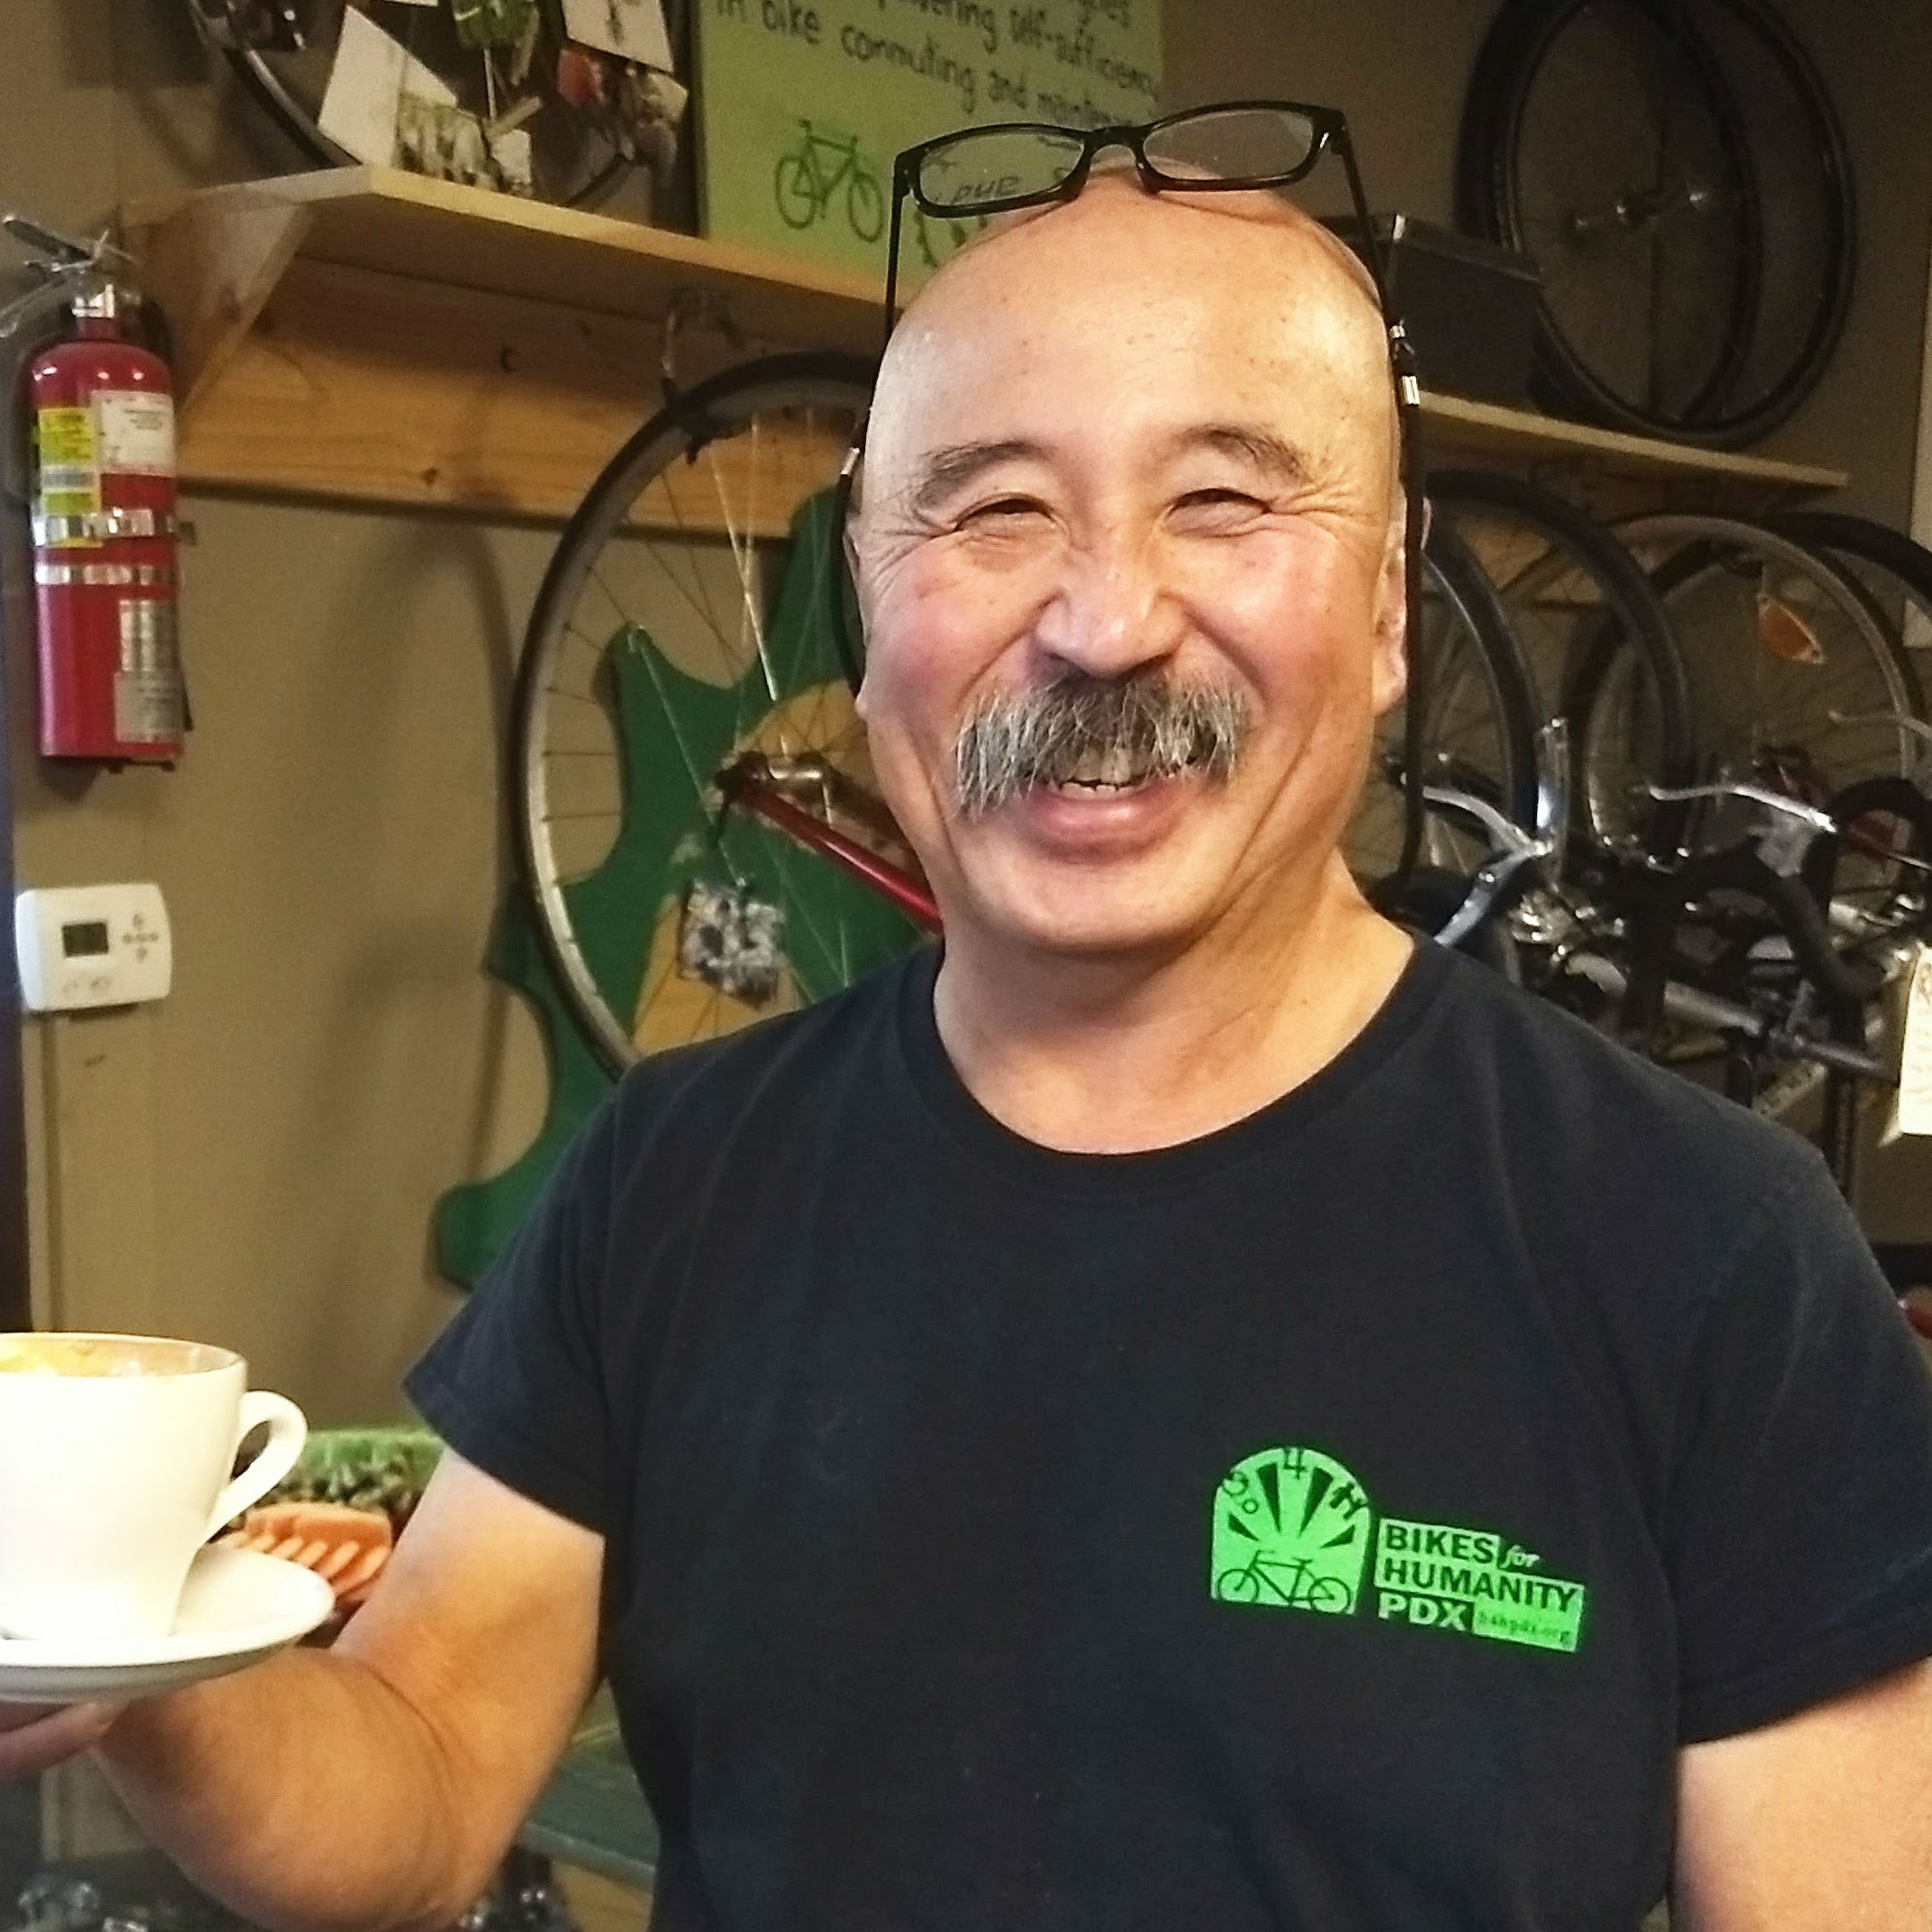 Norm - He's a lifelong bicycle advocate, and been serving on our board since 2015.